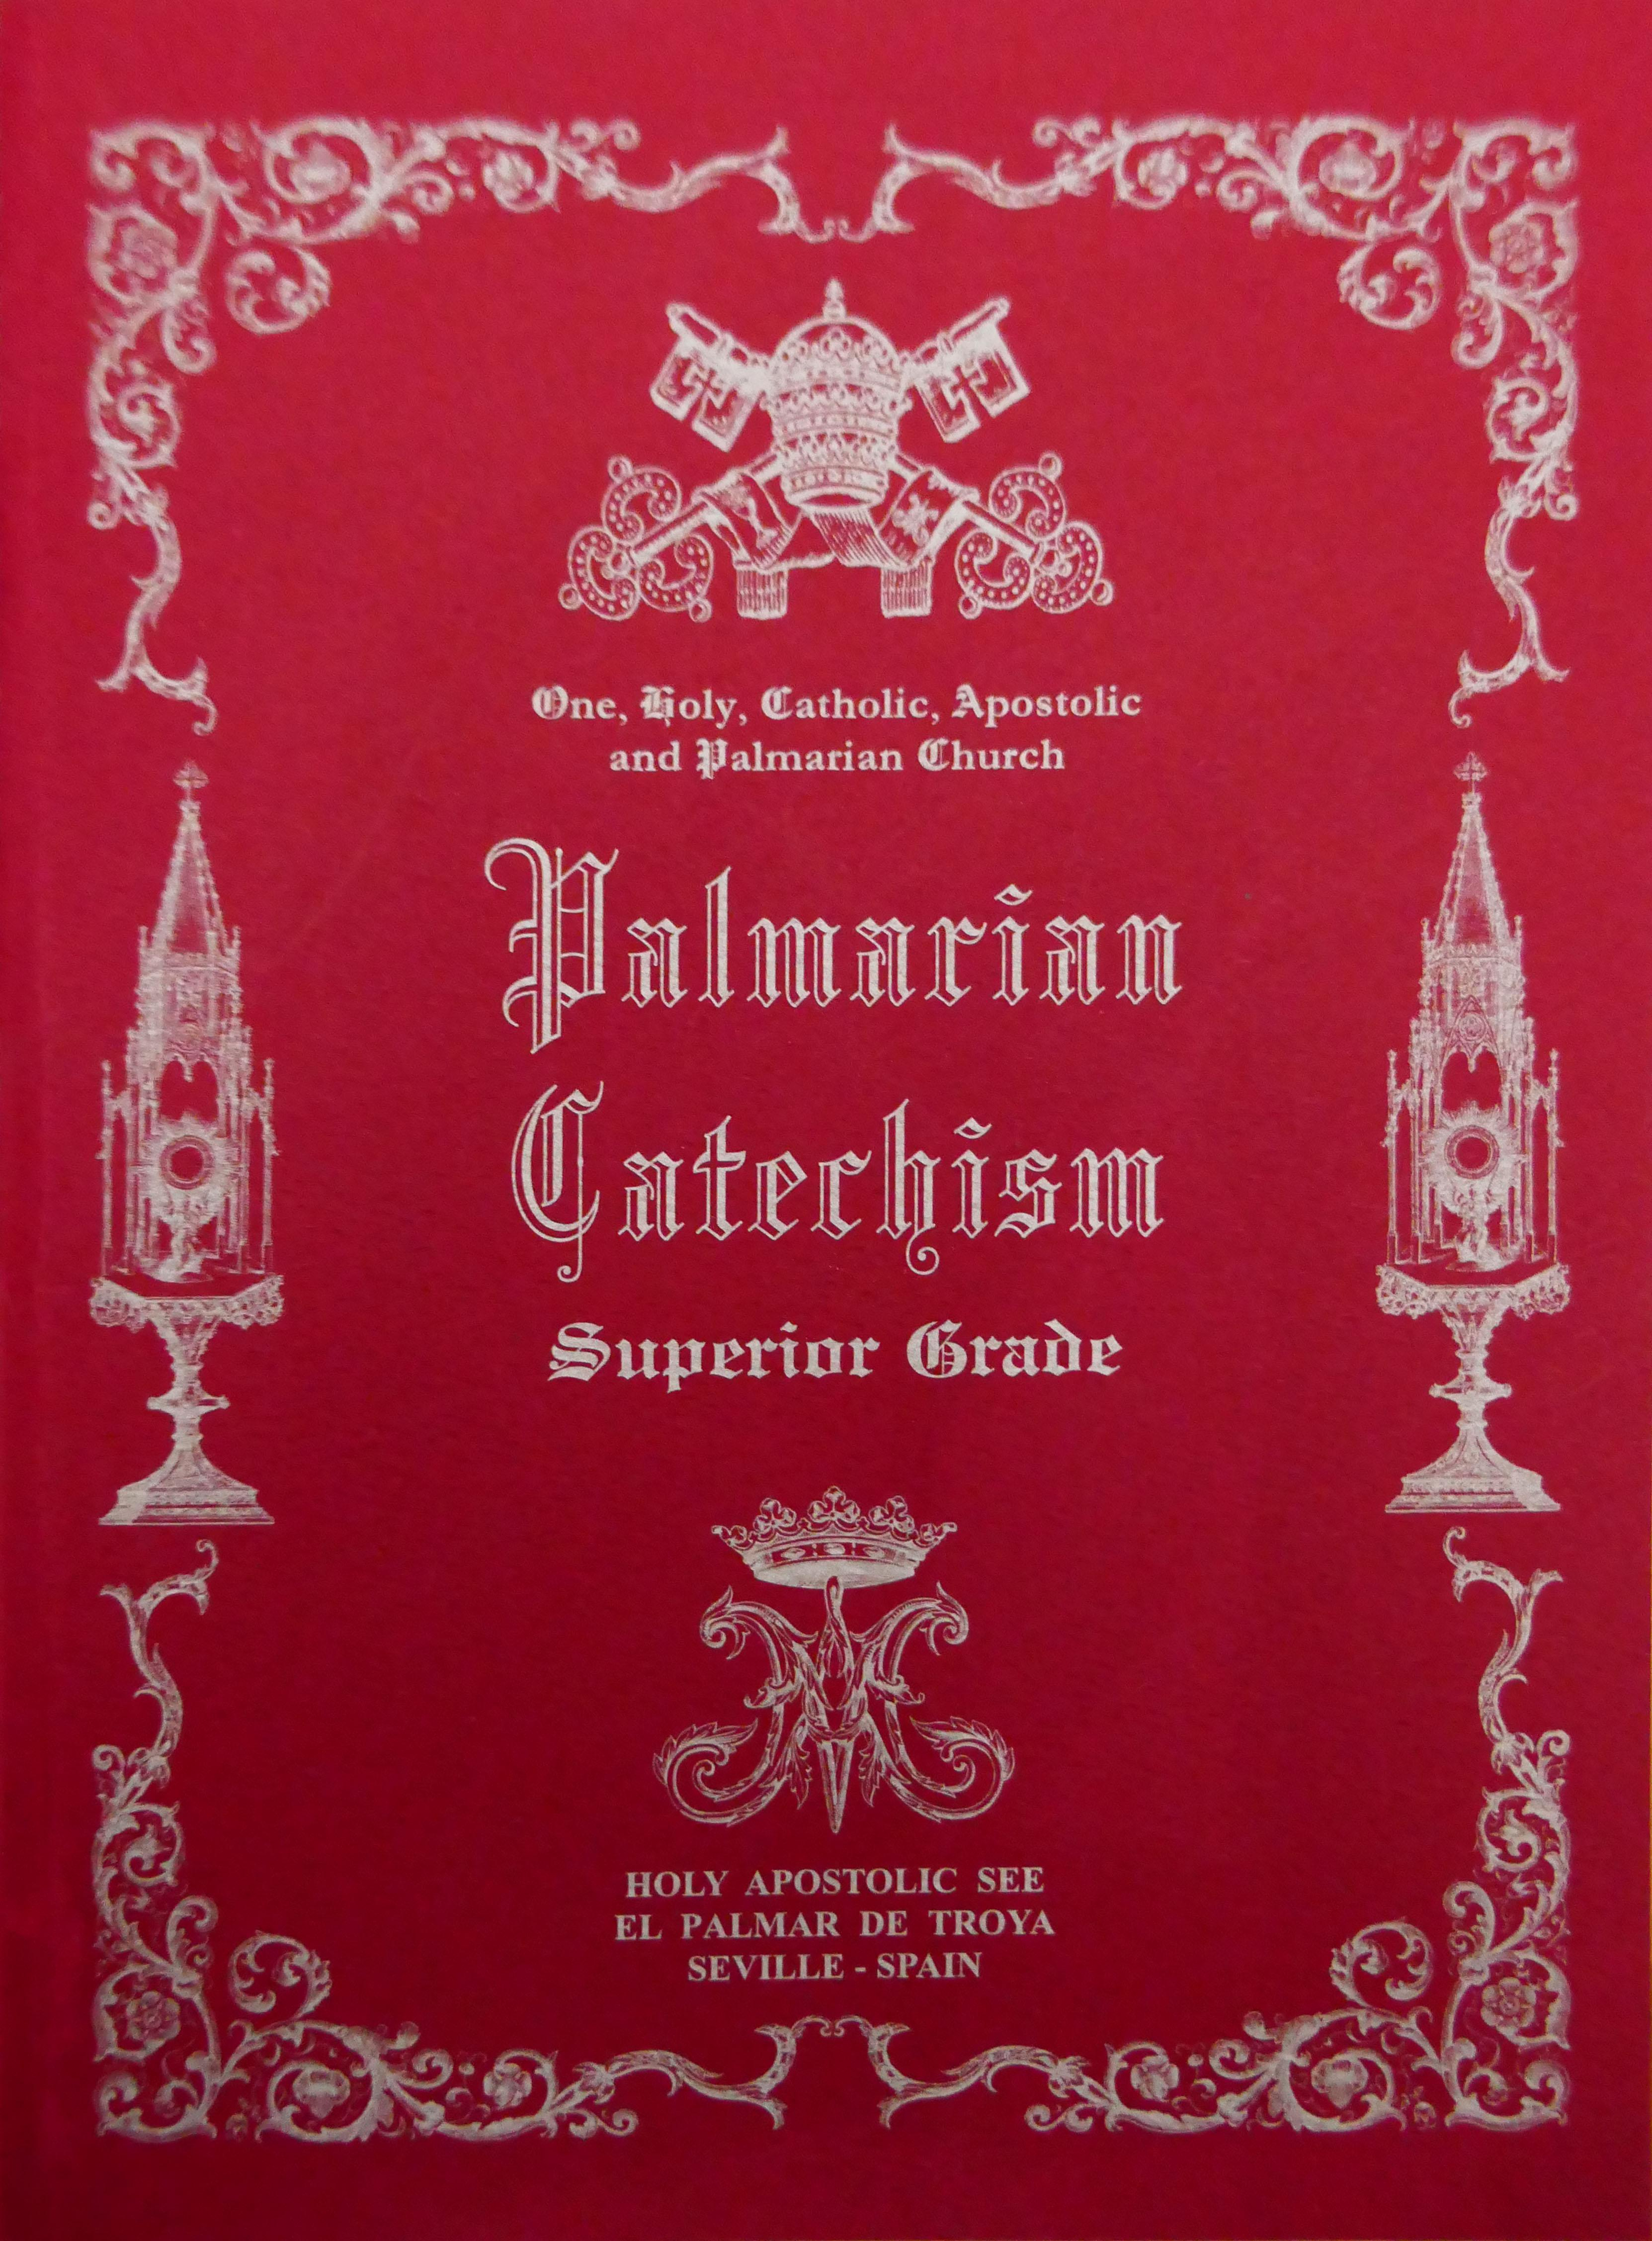 "<a href=""https://www.palmarianchurch.org/wp-content/uploads/2019/03/Extracts-from-the-Palmarian-Catechism.pdf"" title=""Extracts from the Palmarian Catechism"">Extracts from the Palmarian Catechism  <br> <br> See more</a>"